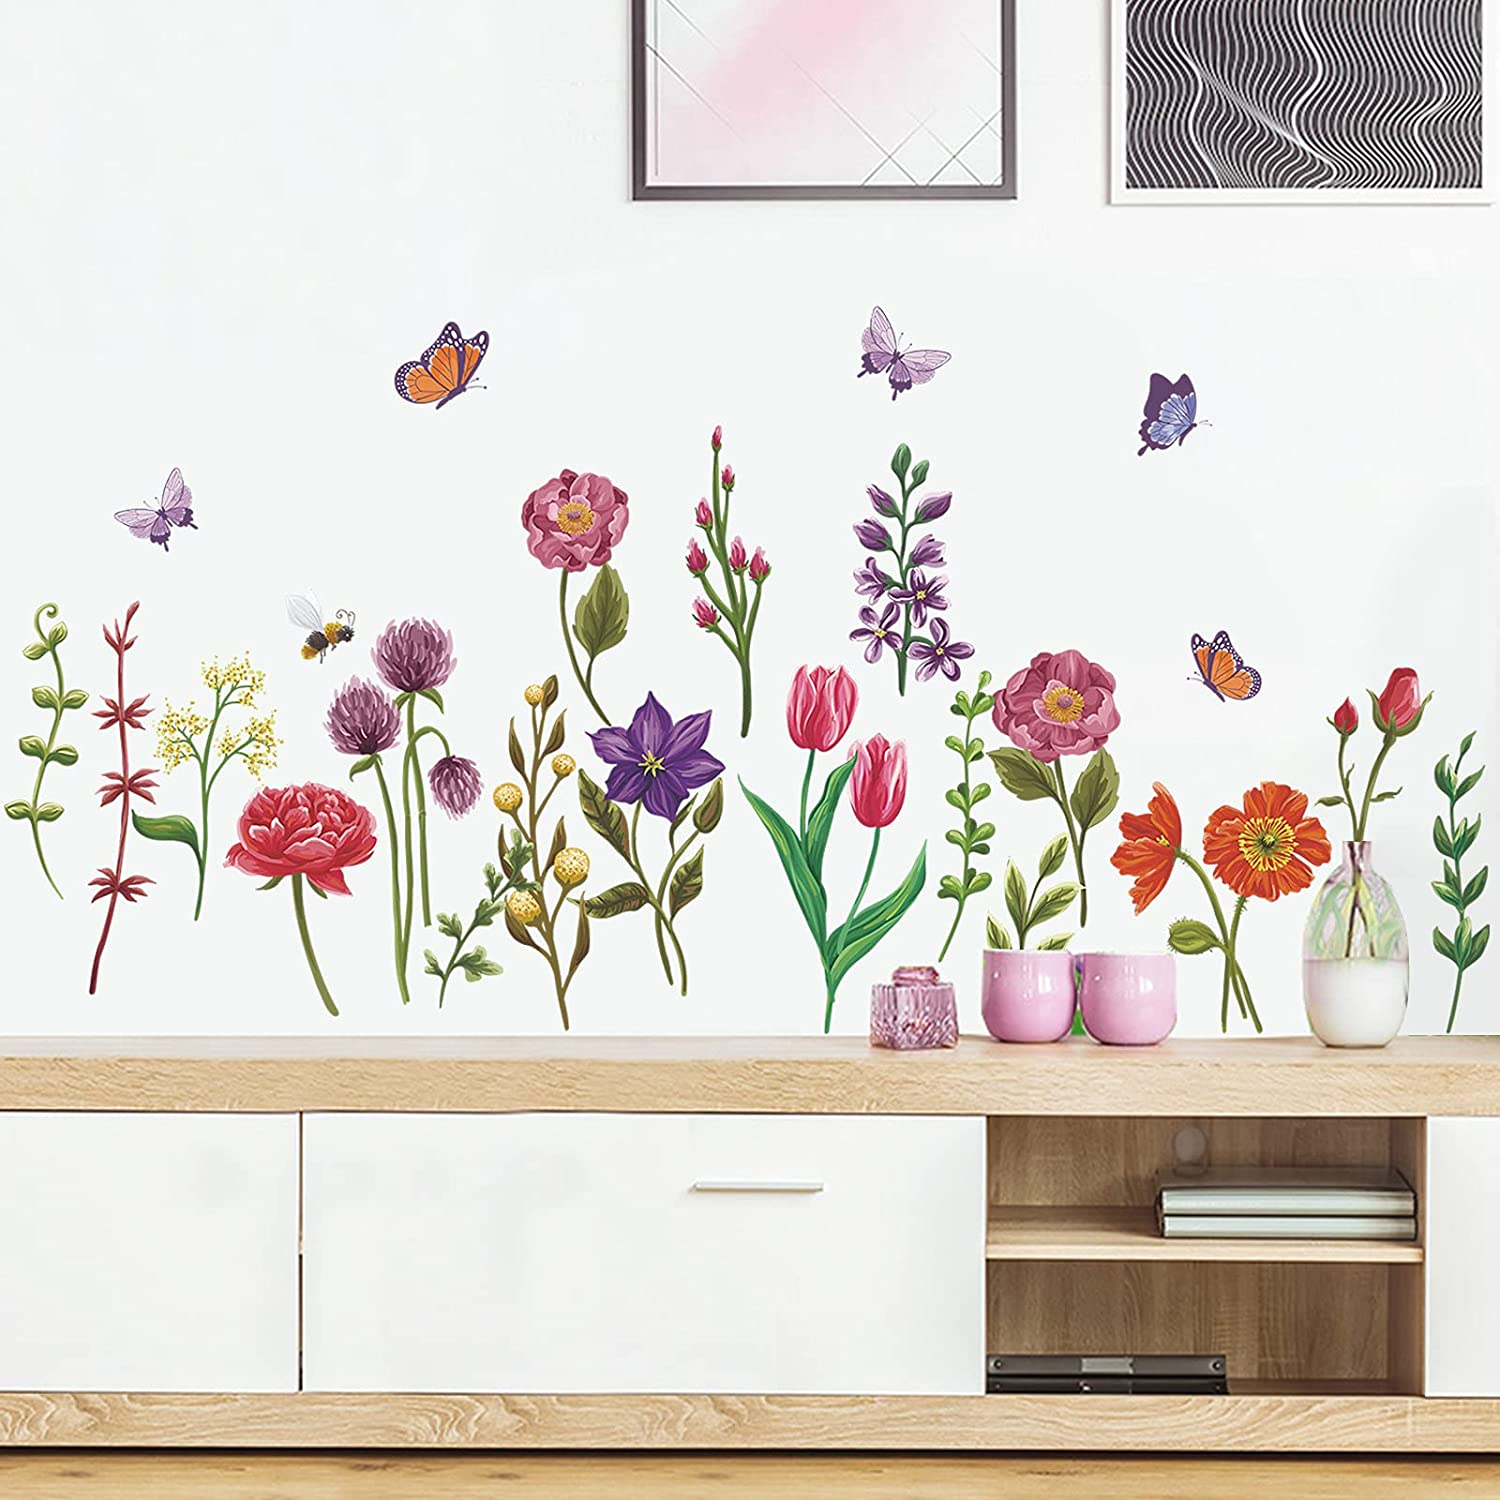 Watercolor Garden Flower Wall Decals 24PCS Peel and Stick Removable Floral Butterfly Wall Art Stickers Bathroom Bedroom Classroom Office Wall Decor